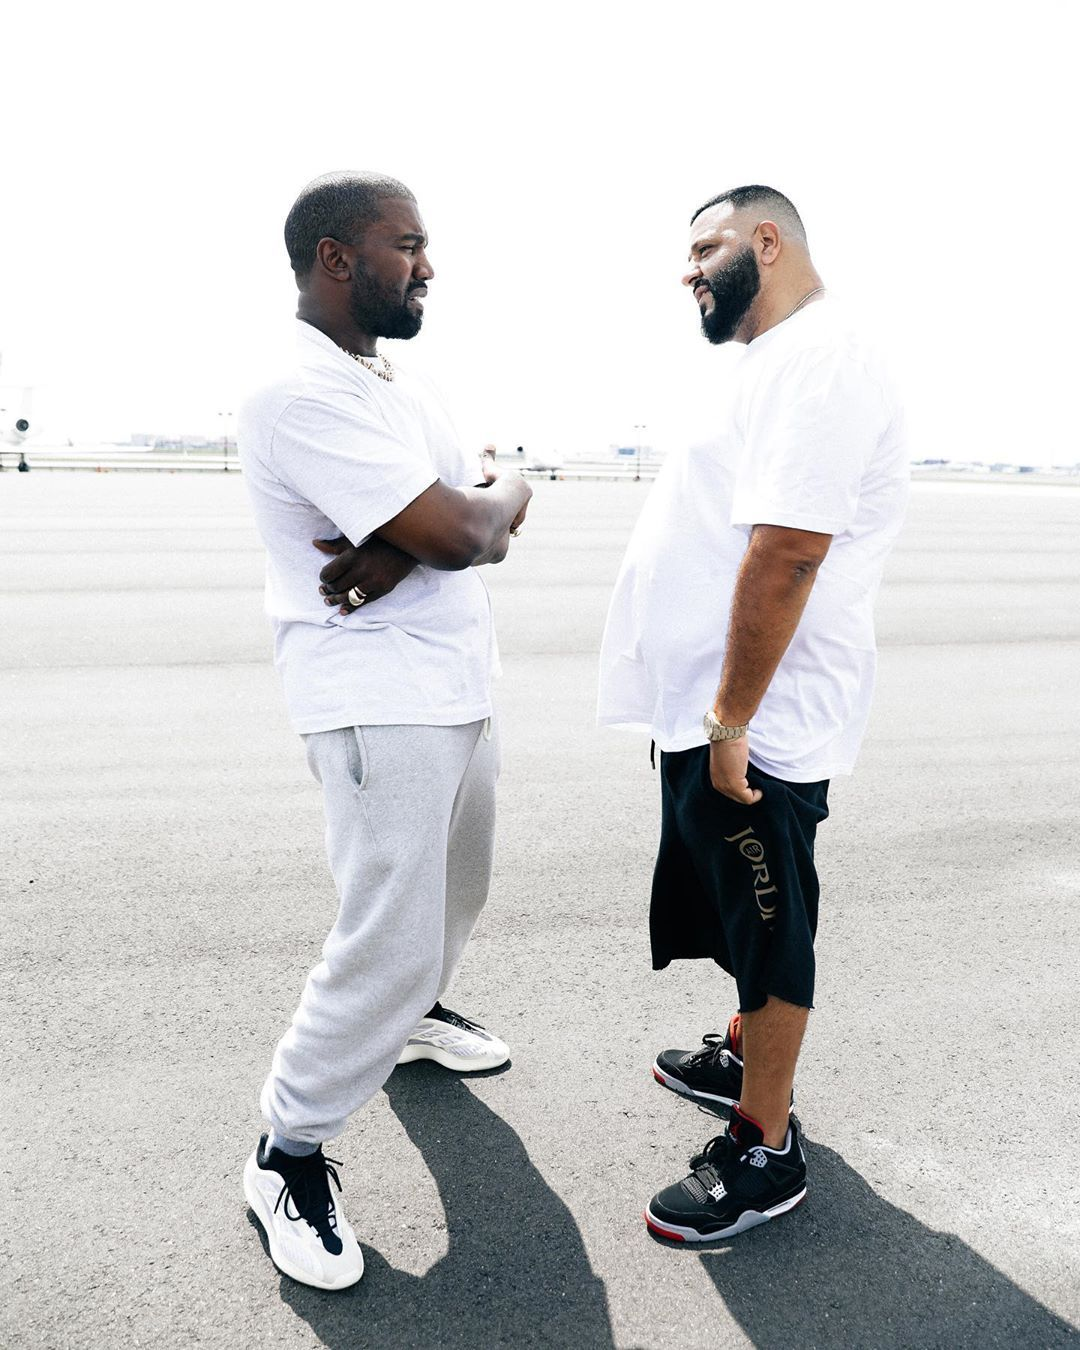 Kanye West Gifted Dj Khaled Unreleased Yeezy 700 V3 From His Feet Kanye West Outfits Kanye Fashion Kanye West Style